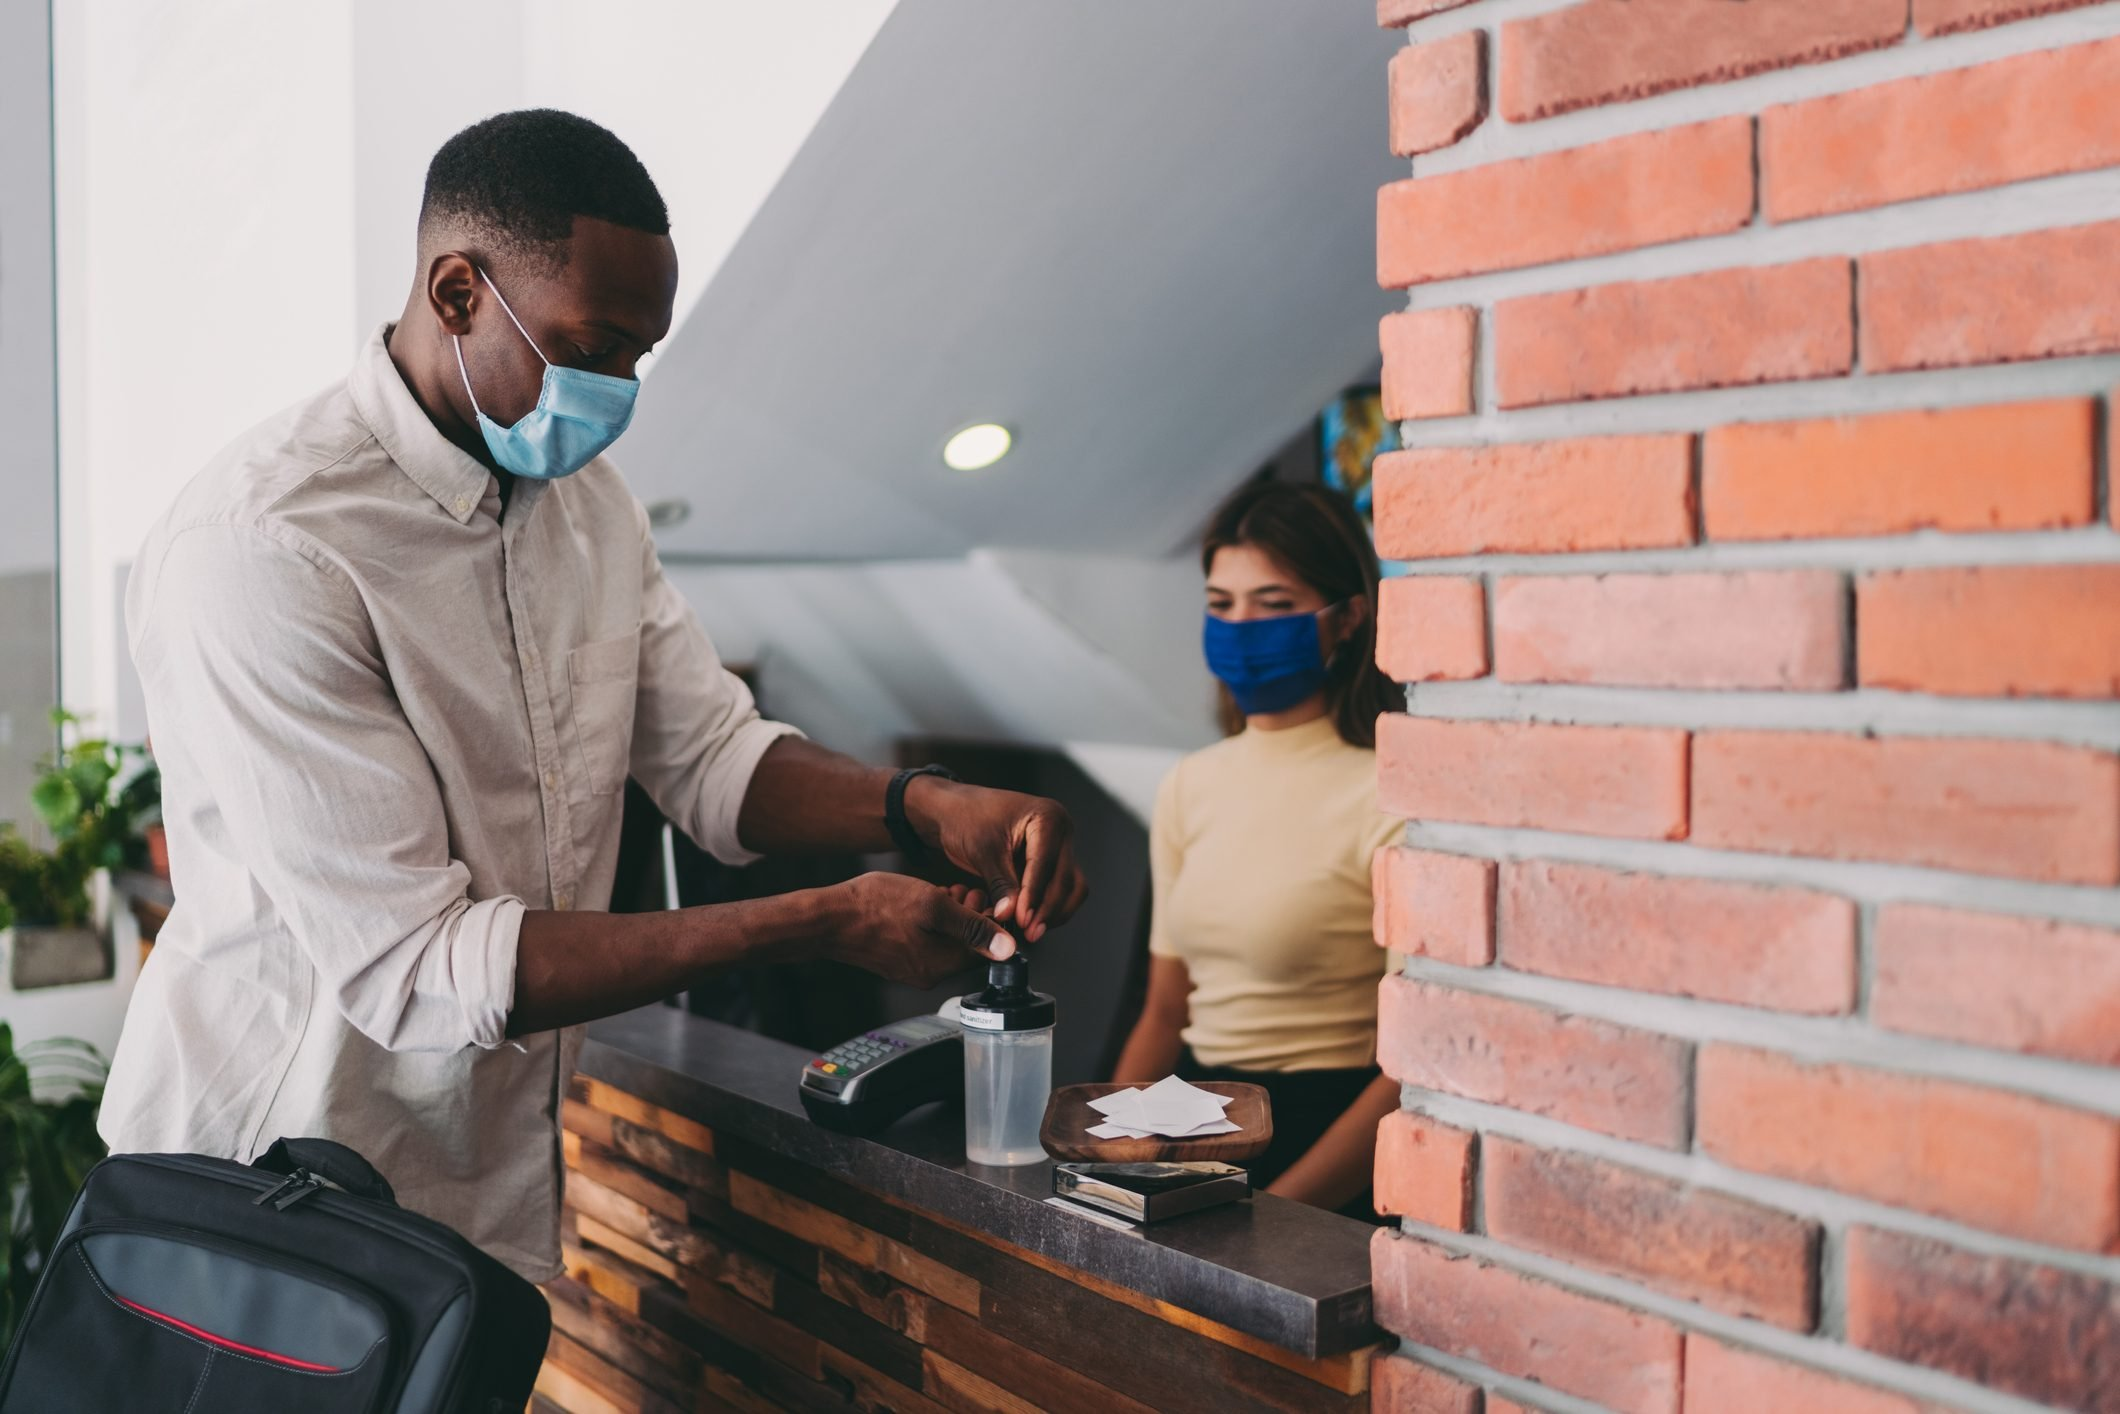 Businessman disinfecting his hands at hotel reception due to COVID-19 virus